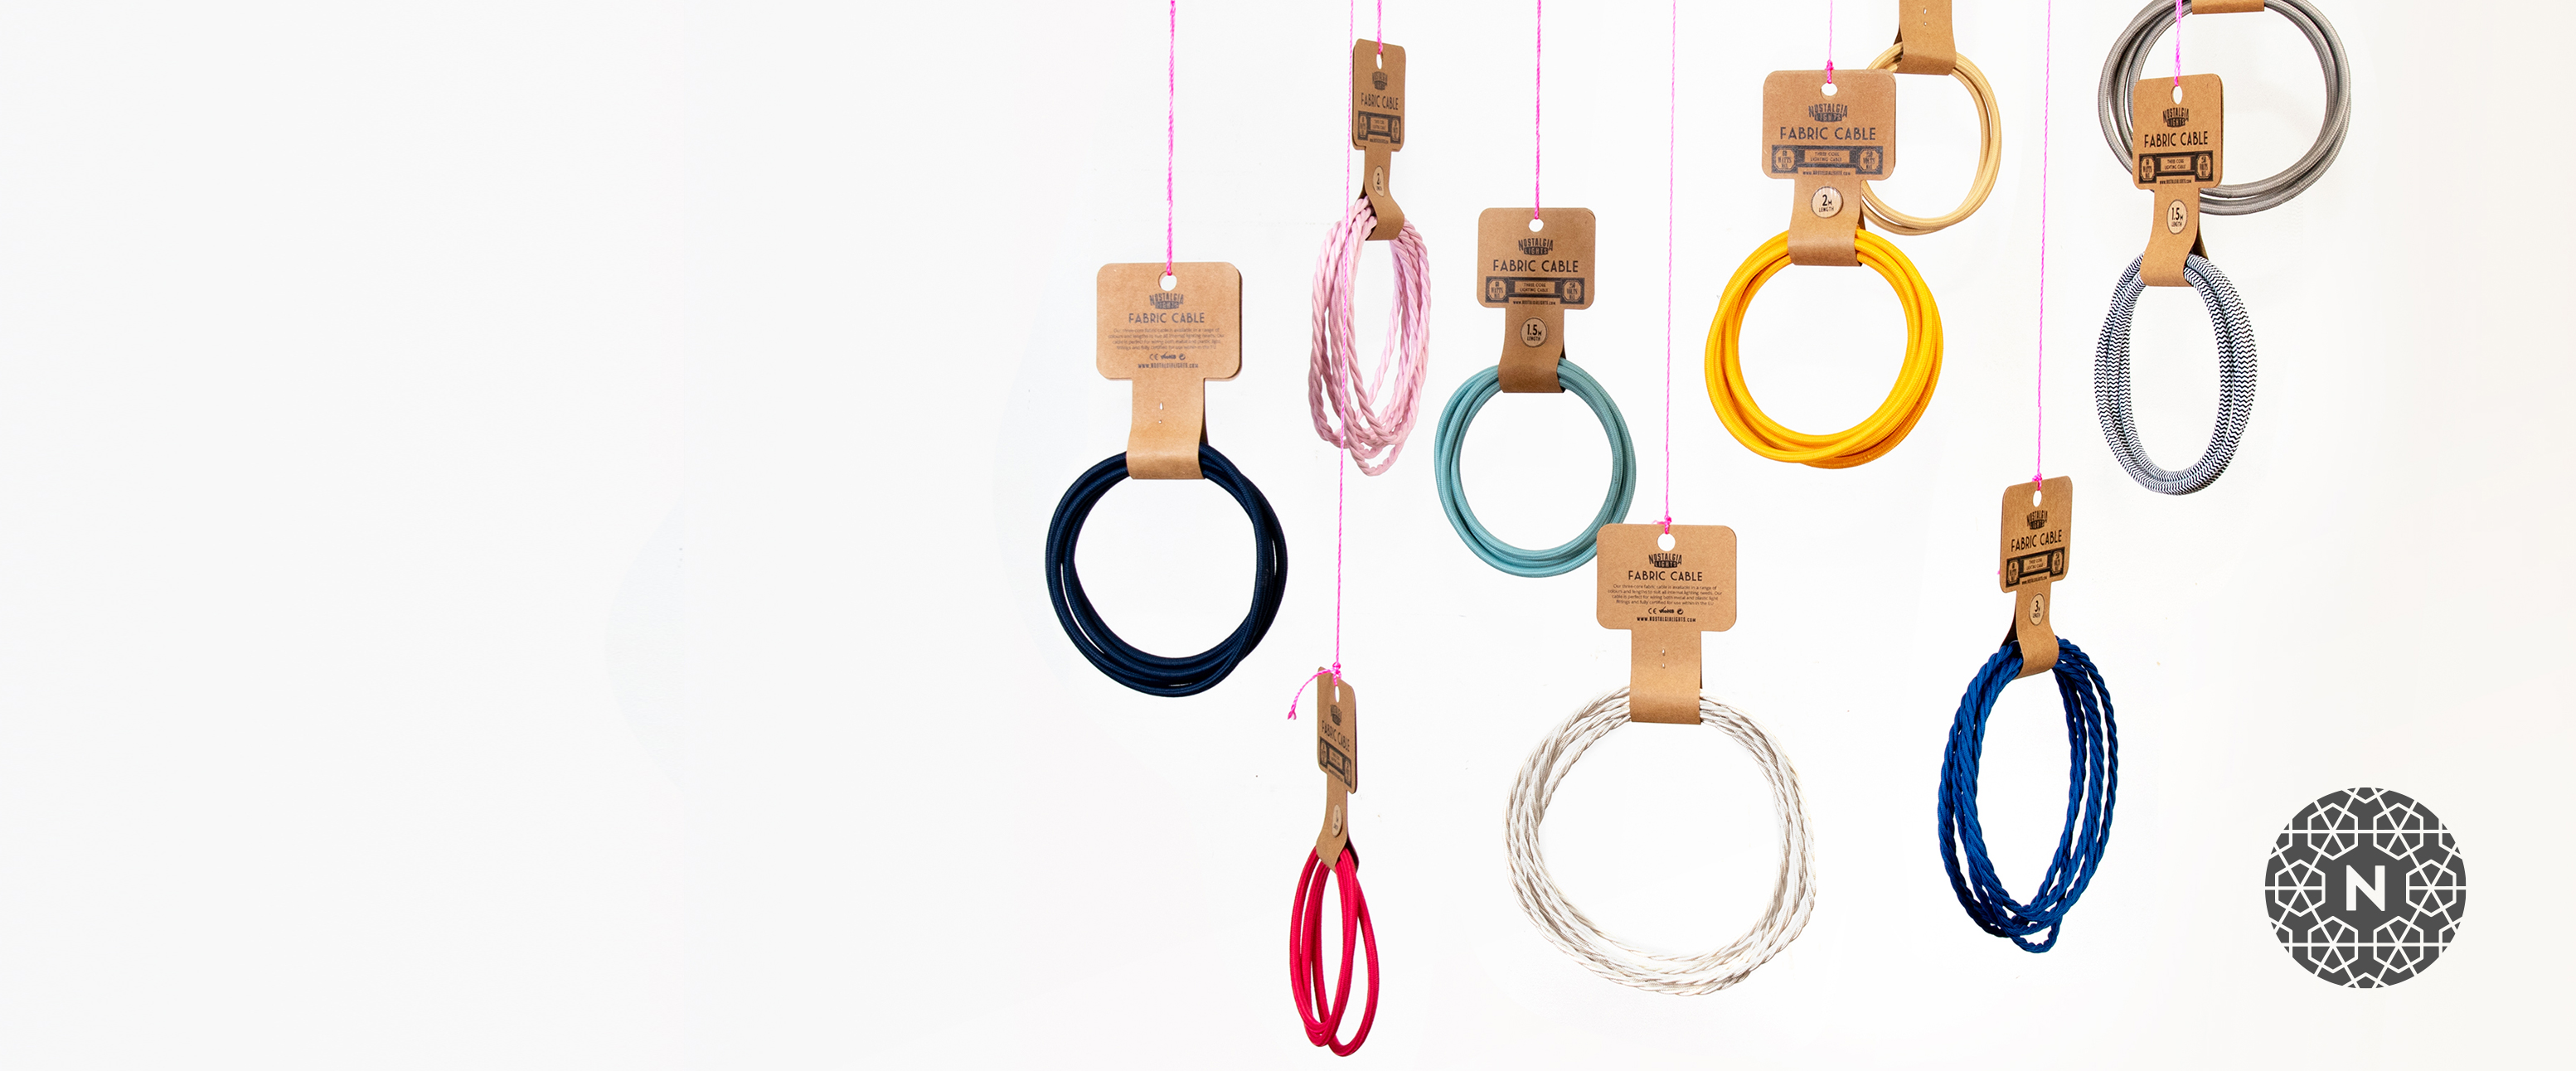 Fabric Cable Packs